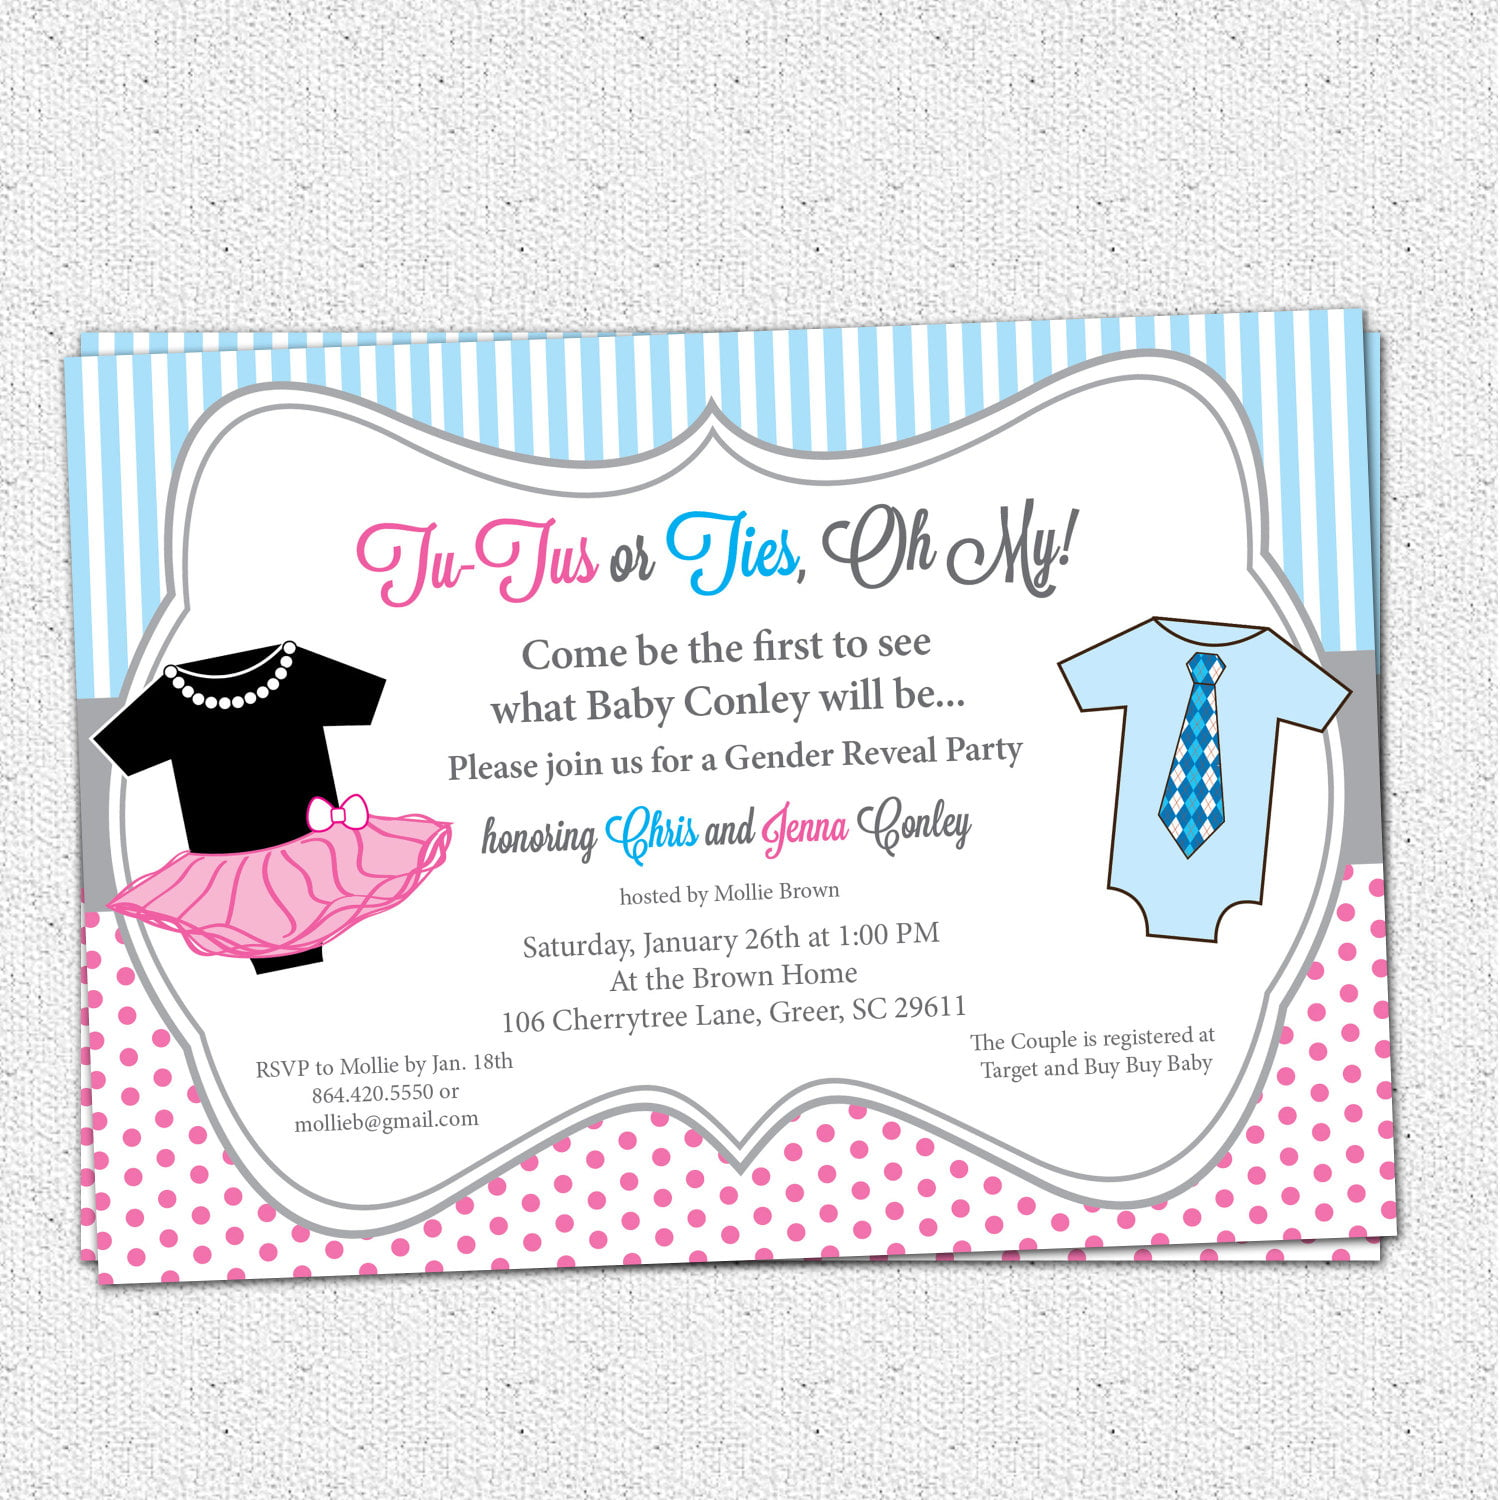 dress how to make your own baby shower invitations